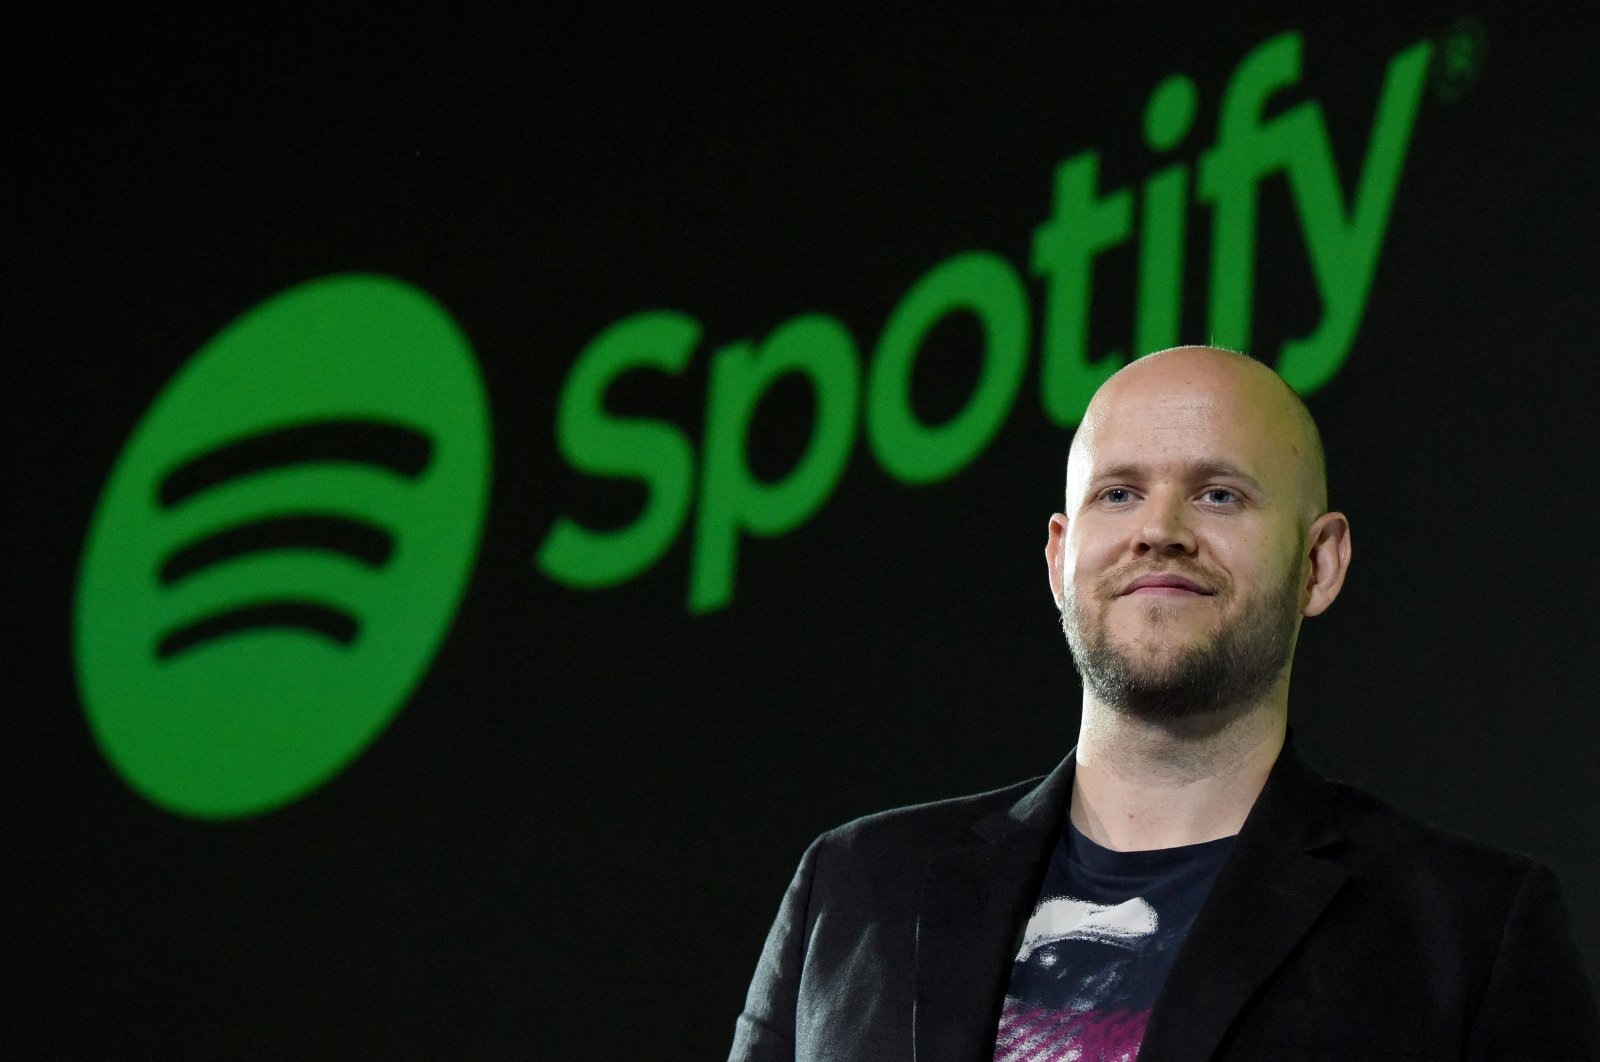 Spotify co-owner Ek says his offer to buy Arsenal rejected